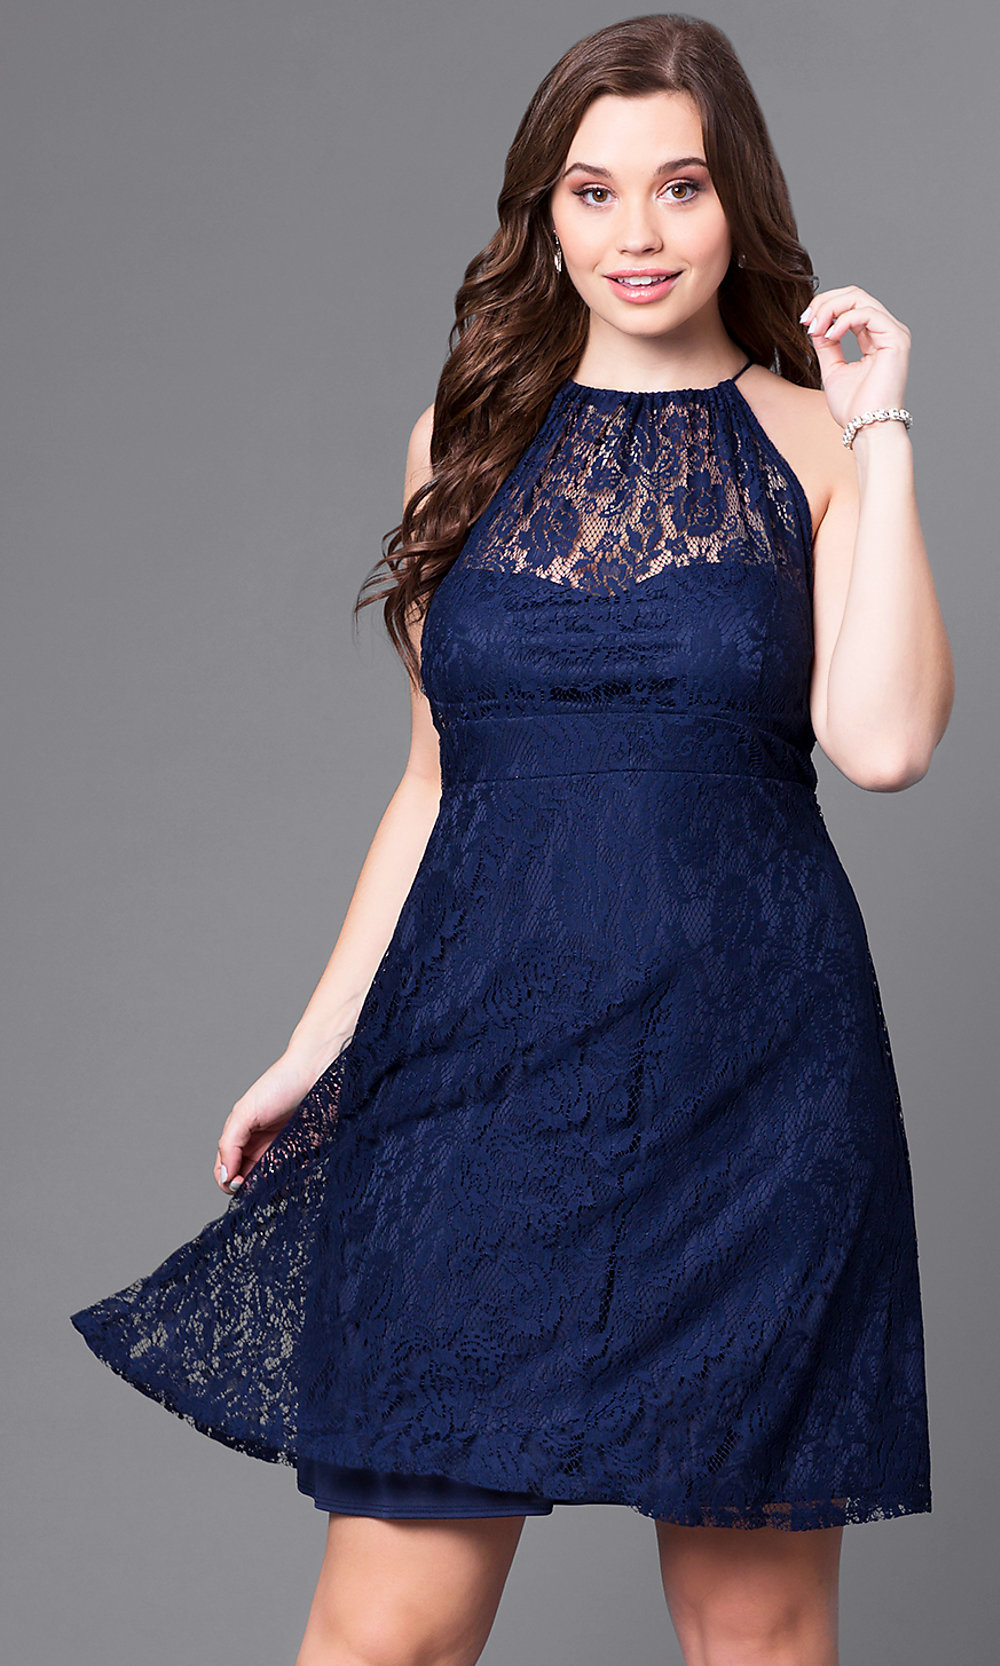 06c45683 Image of empire-waist plus-size short navy party dress in lace. Style. Tap  to expand